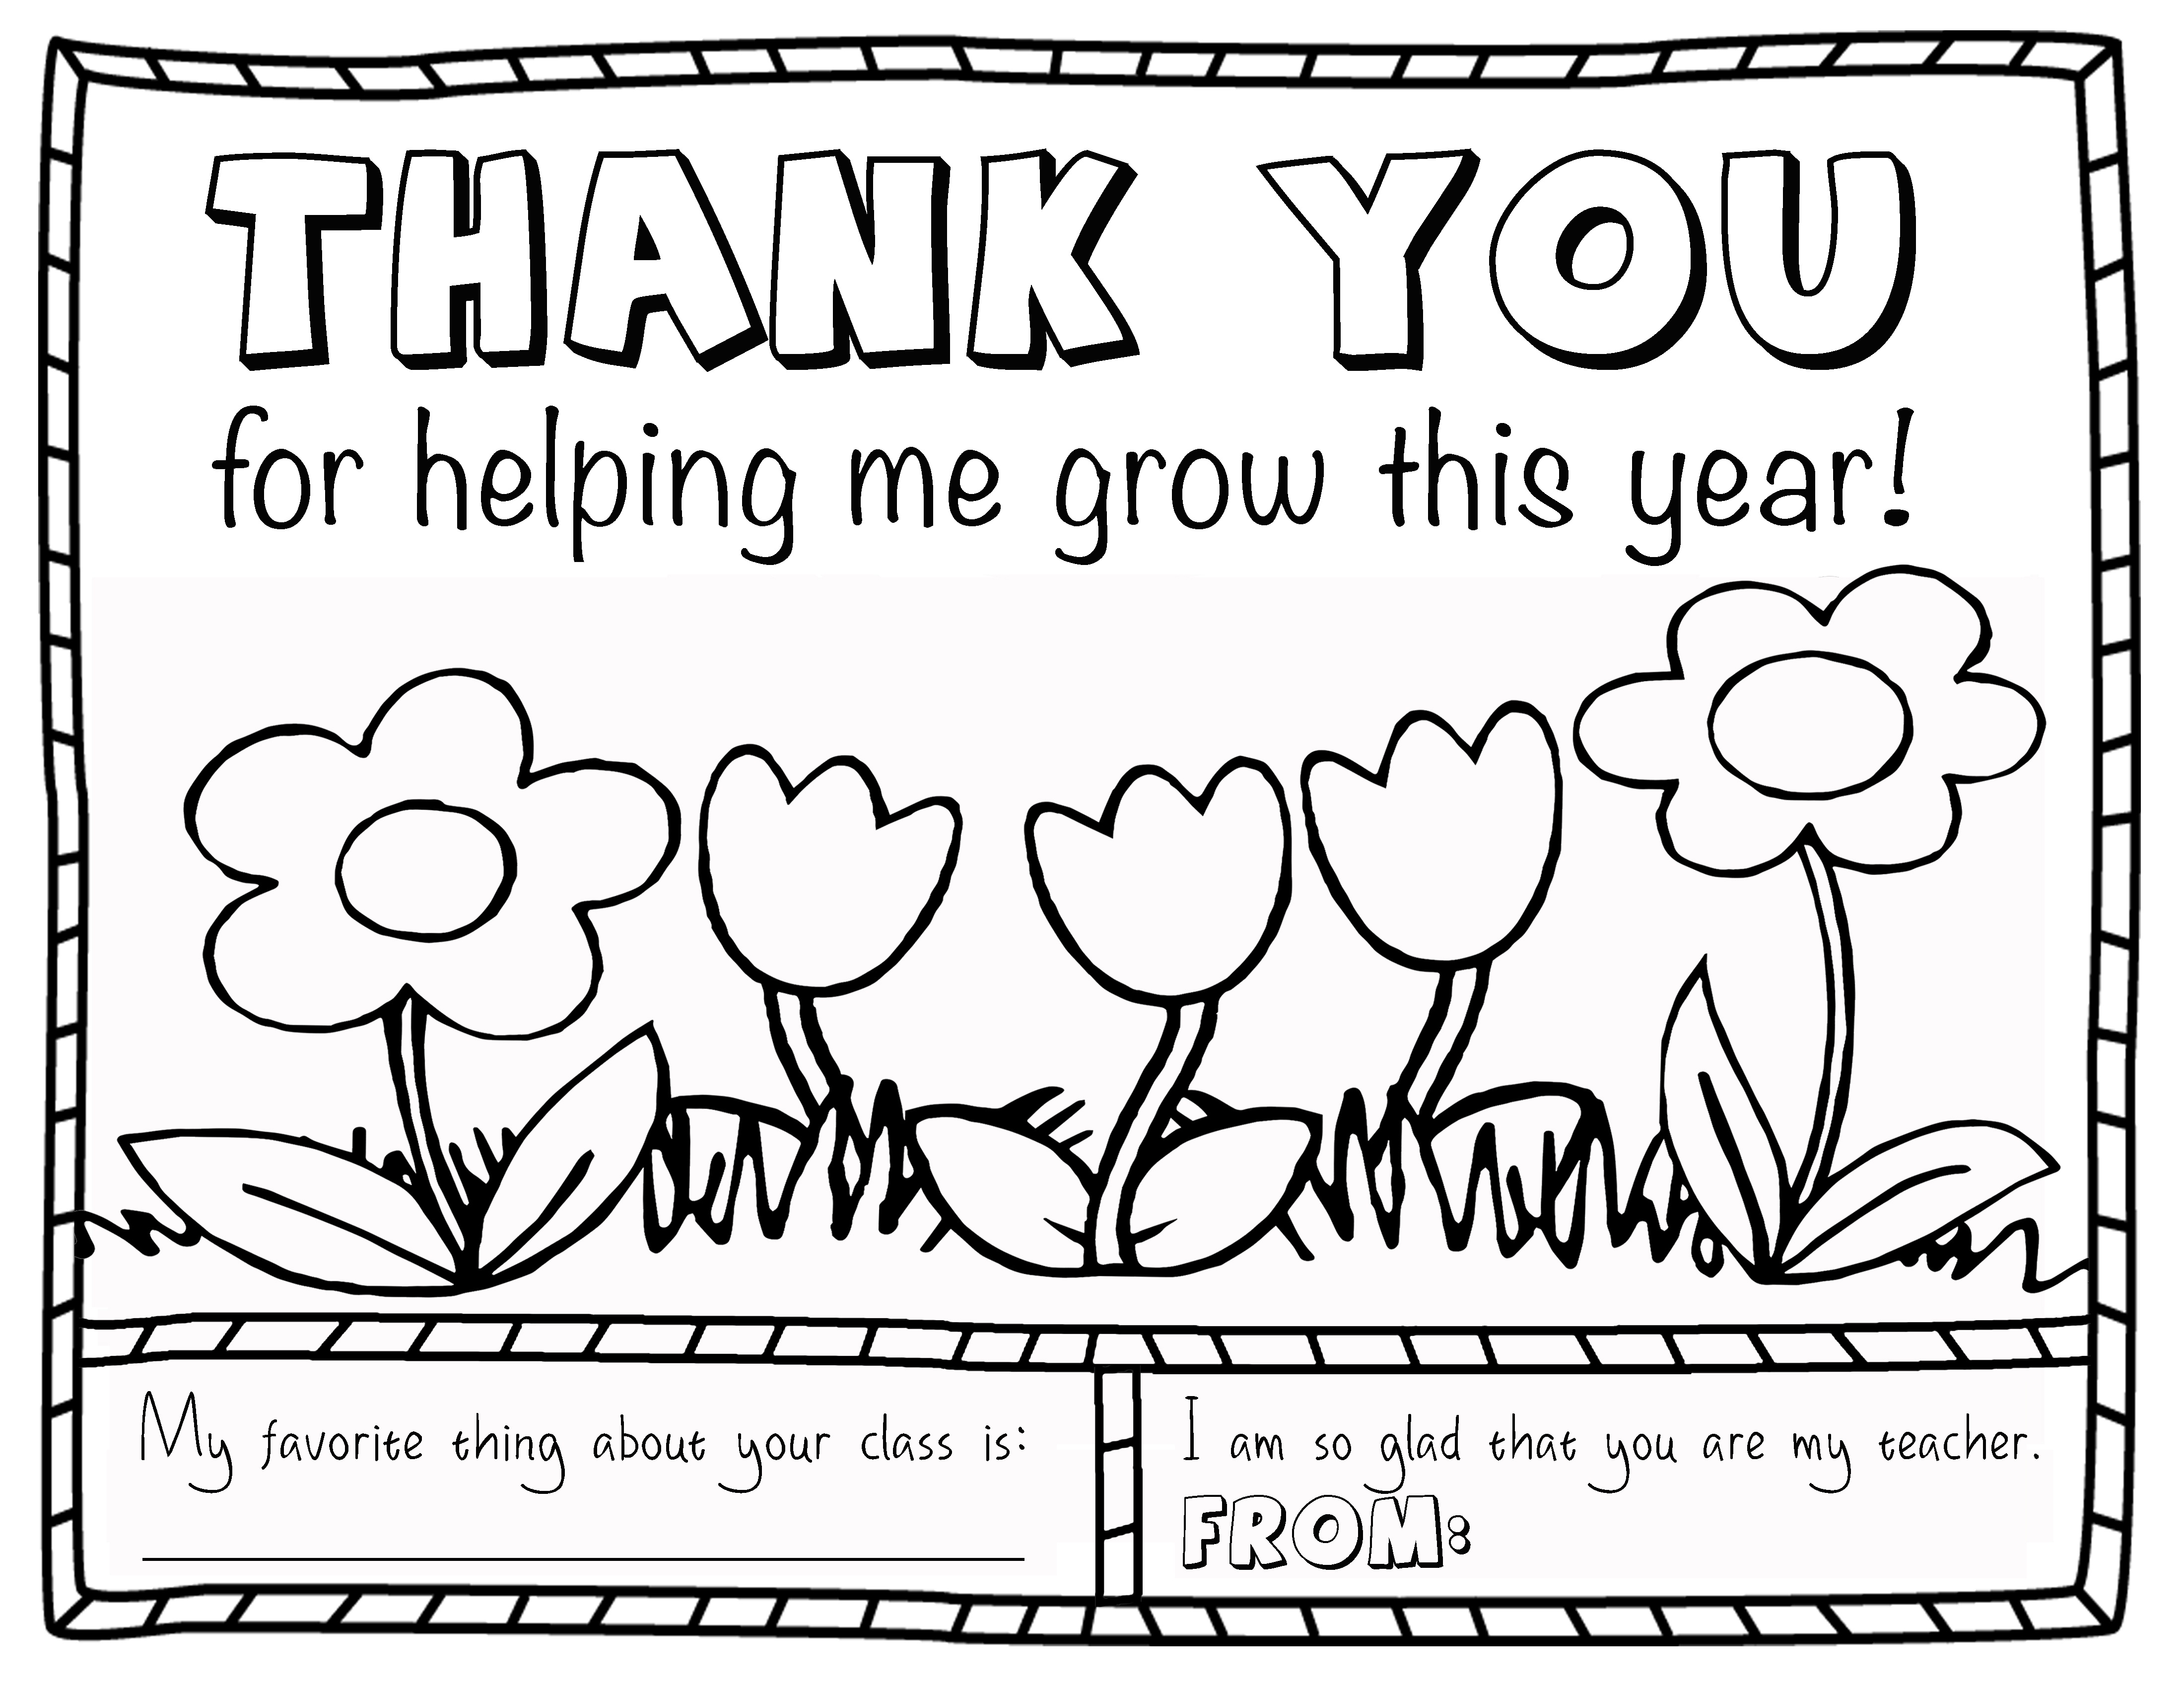 Coloring Pages : Teacher Appreciation Coloring Pages Teacher - Free Printable Teacher Appreciation Cards To Color